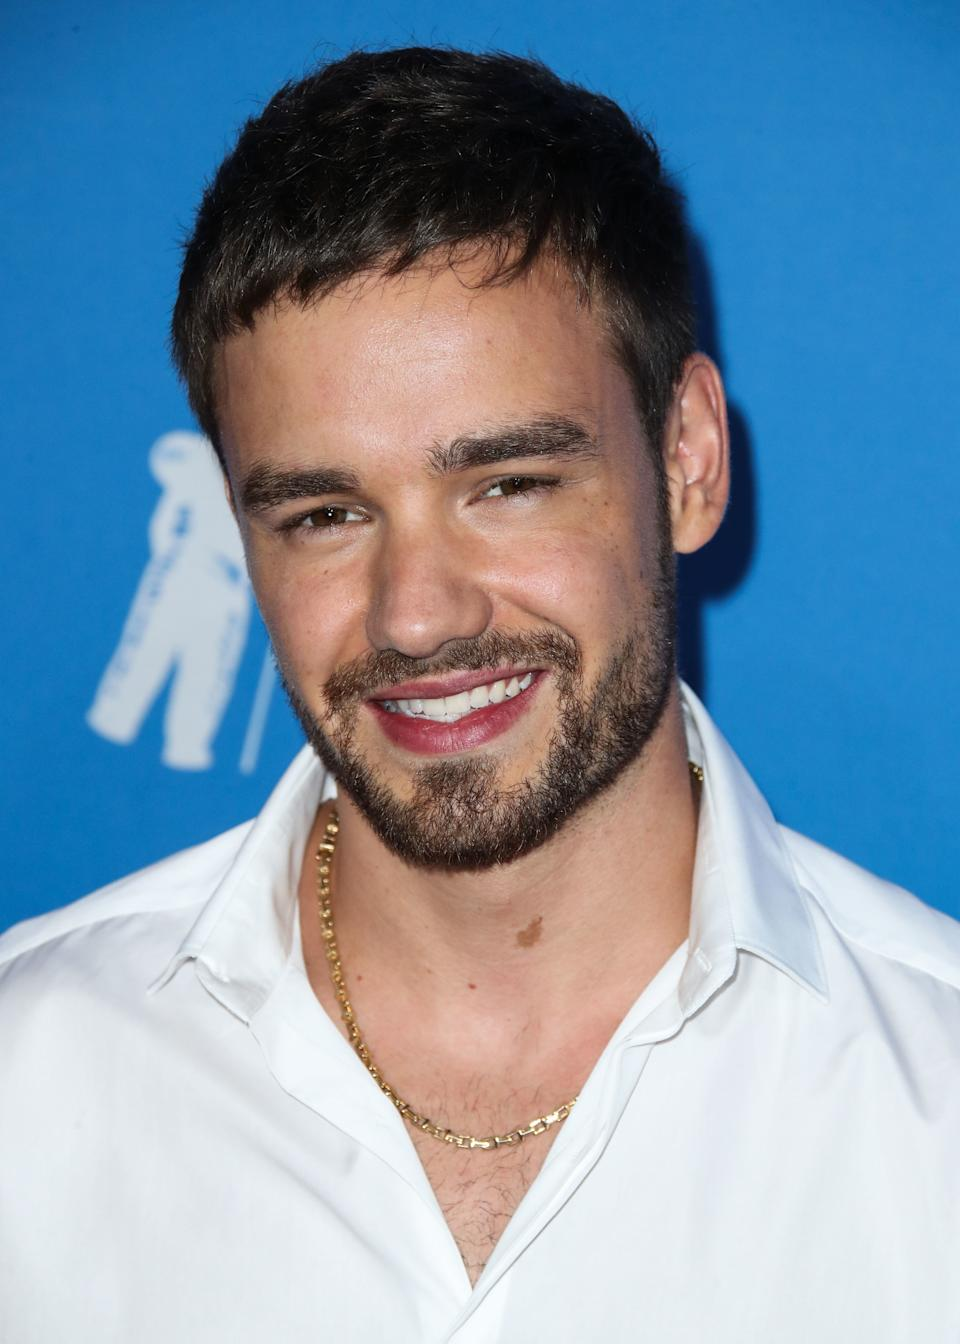 (FILE) Liam Payne Donates 360,000 Meals To Families In Need Amid Coronavirus COVID-19 Pandemic. MANHATTAN, NEW YORK CITY, NEW YORK, USA - AUGUST 20: Singer Liam Payne arrives at the 2018 MTV Video Music Awards held at the Radio City Music Hall on August 20, 2018 in Manhattan, New York City, New York, United States. (Photo by Xavier Collin/Image Press Agency/Sipa USA)